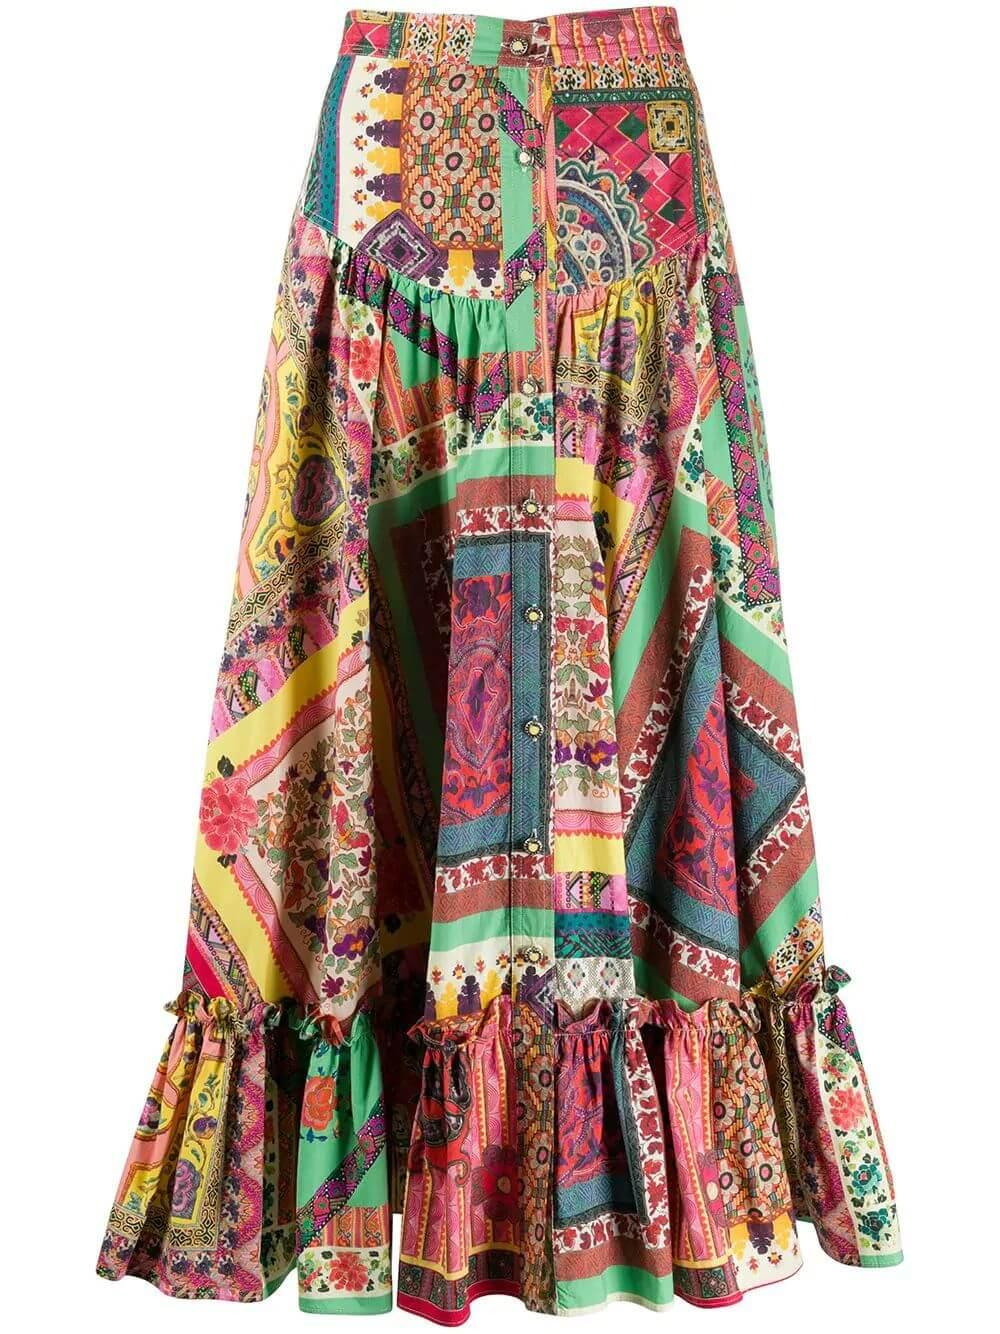 Cotton Patchwork Maxi Skirt